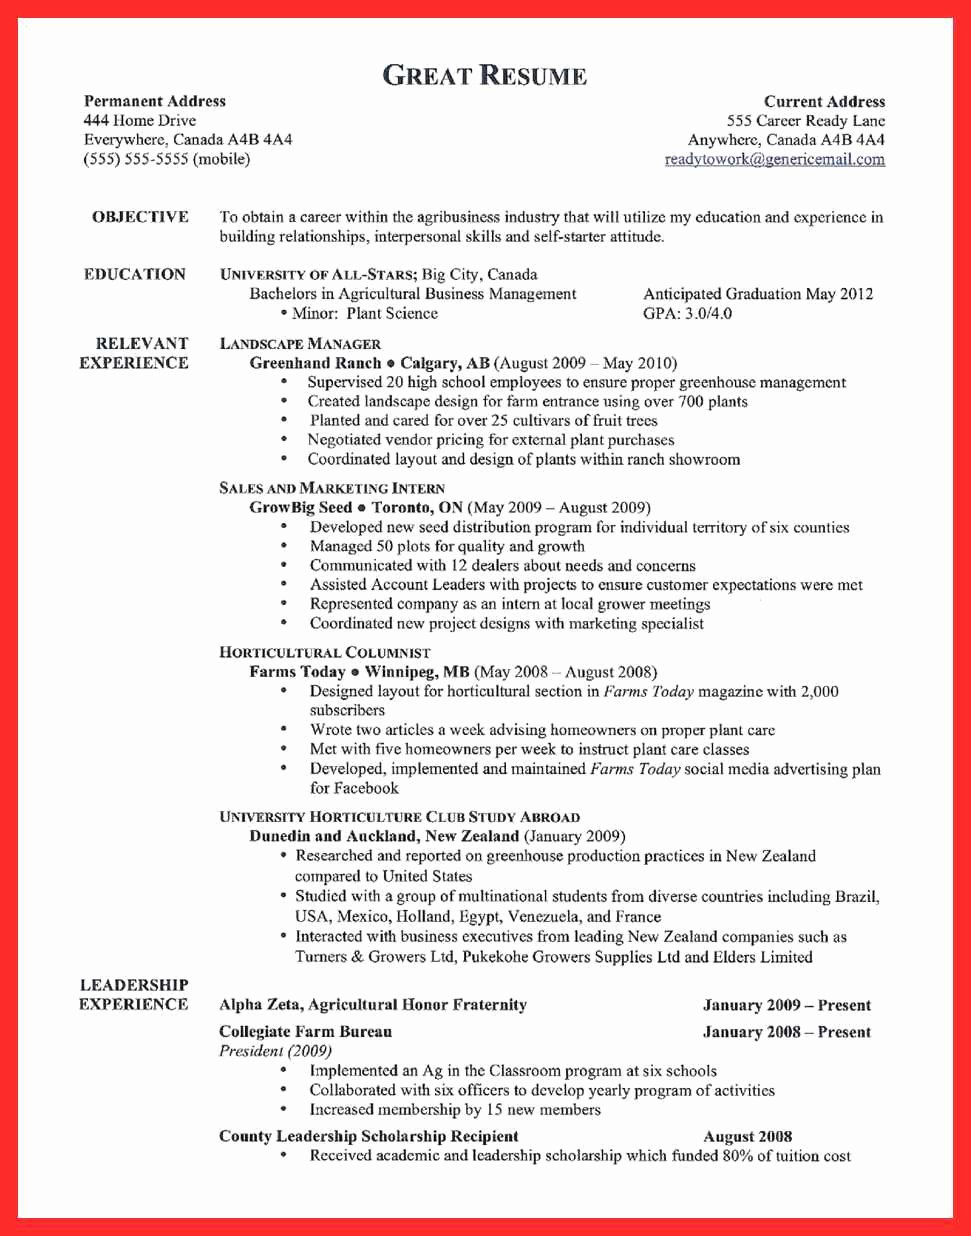 Examples Of Excellent Resumes Luxury Example Great Resume